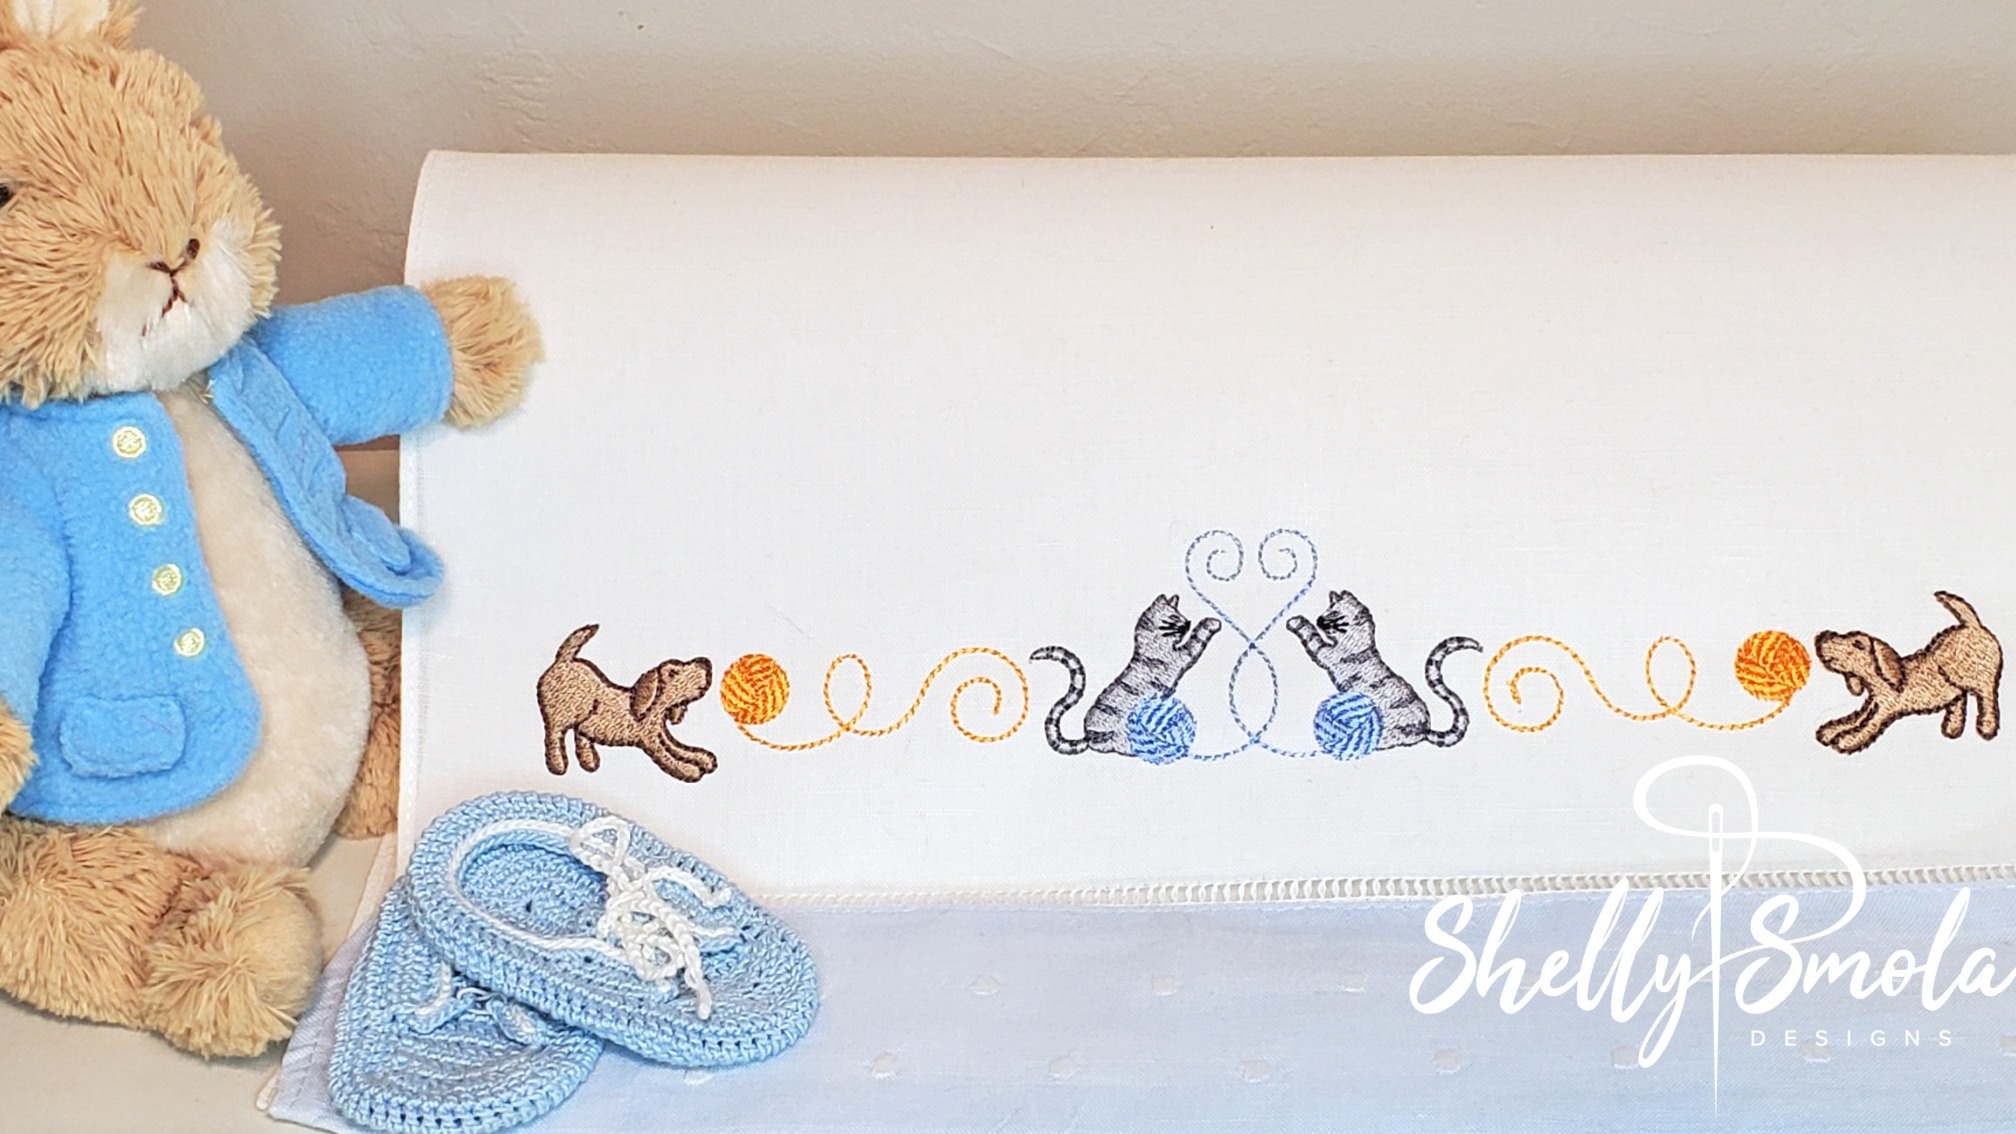 Playful Threads Border by Shelly Smola